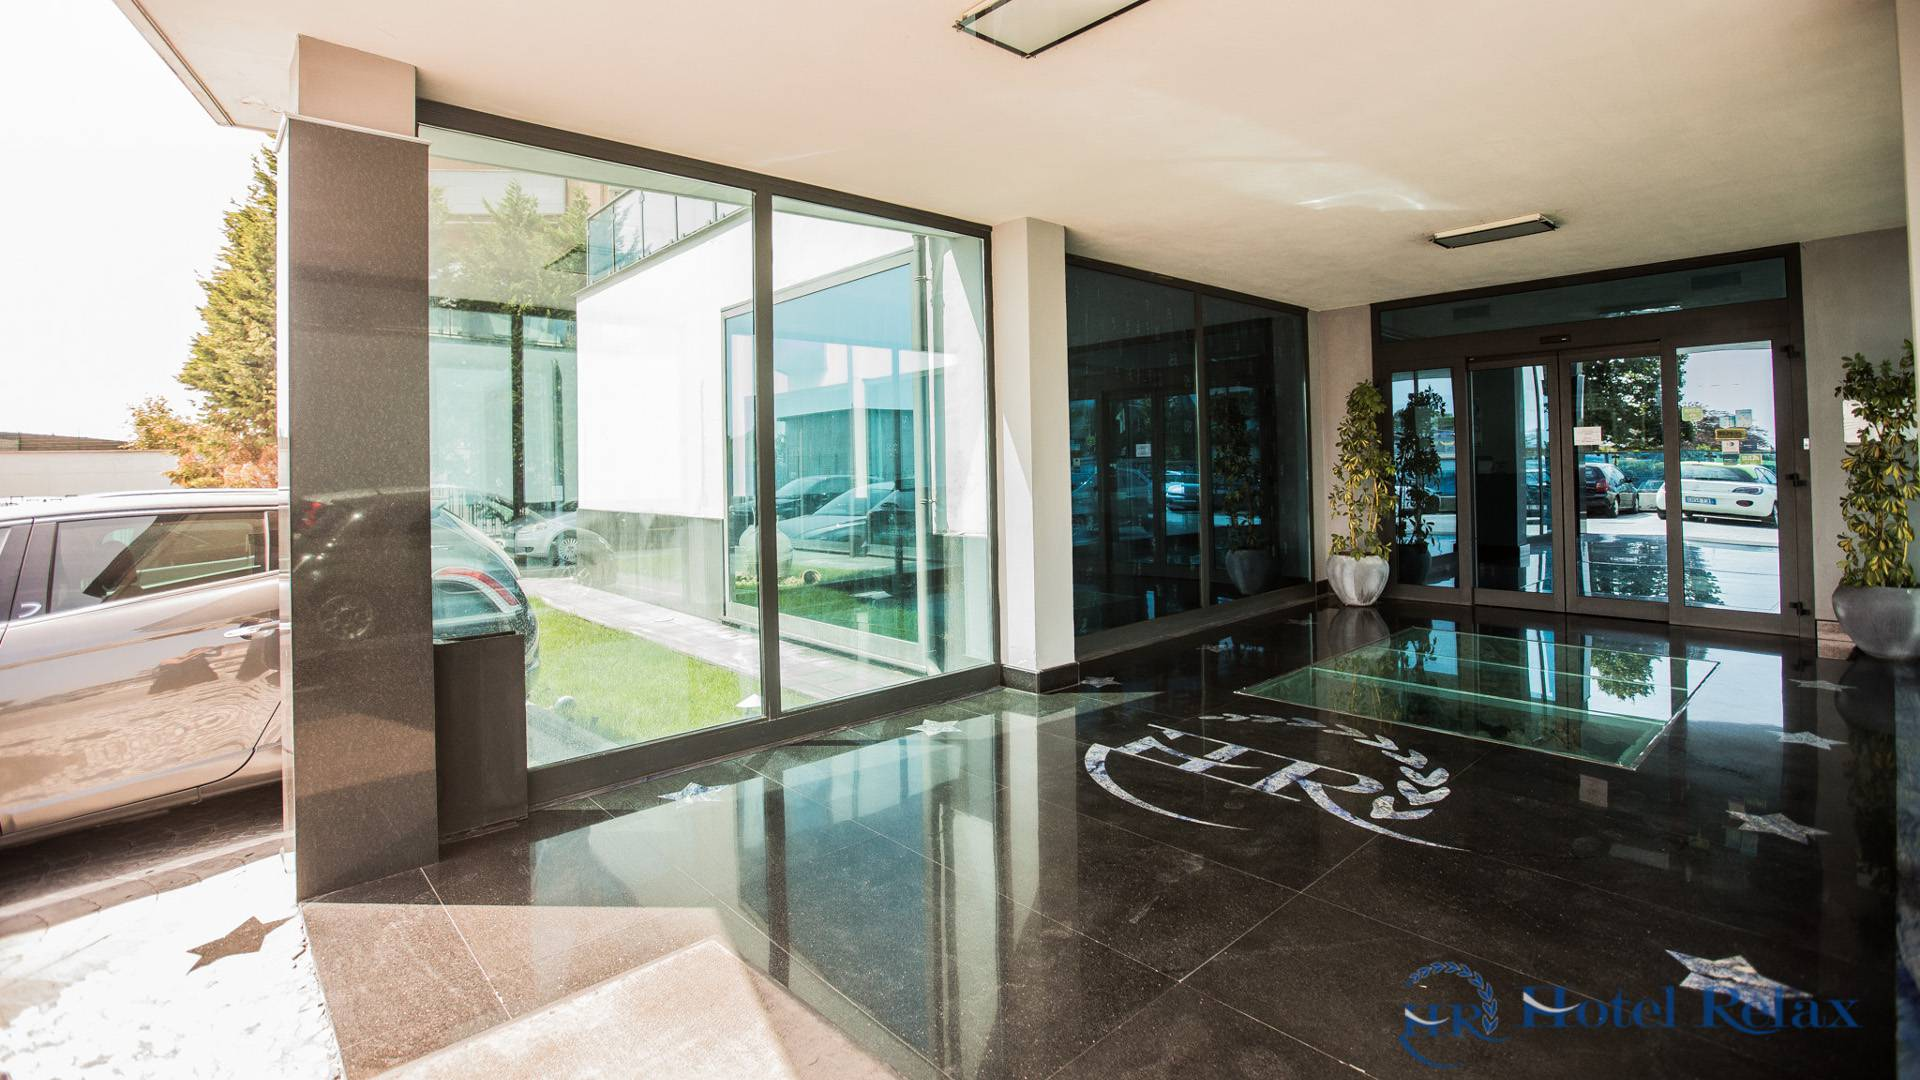 hotel-relax-rome-entry-8856